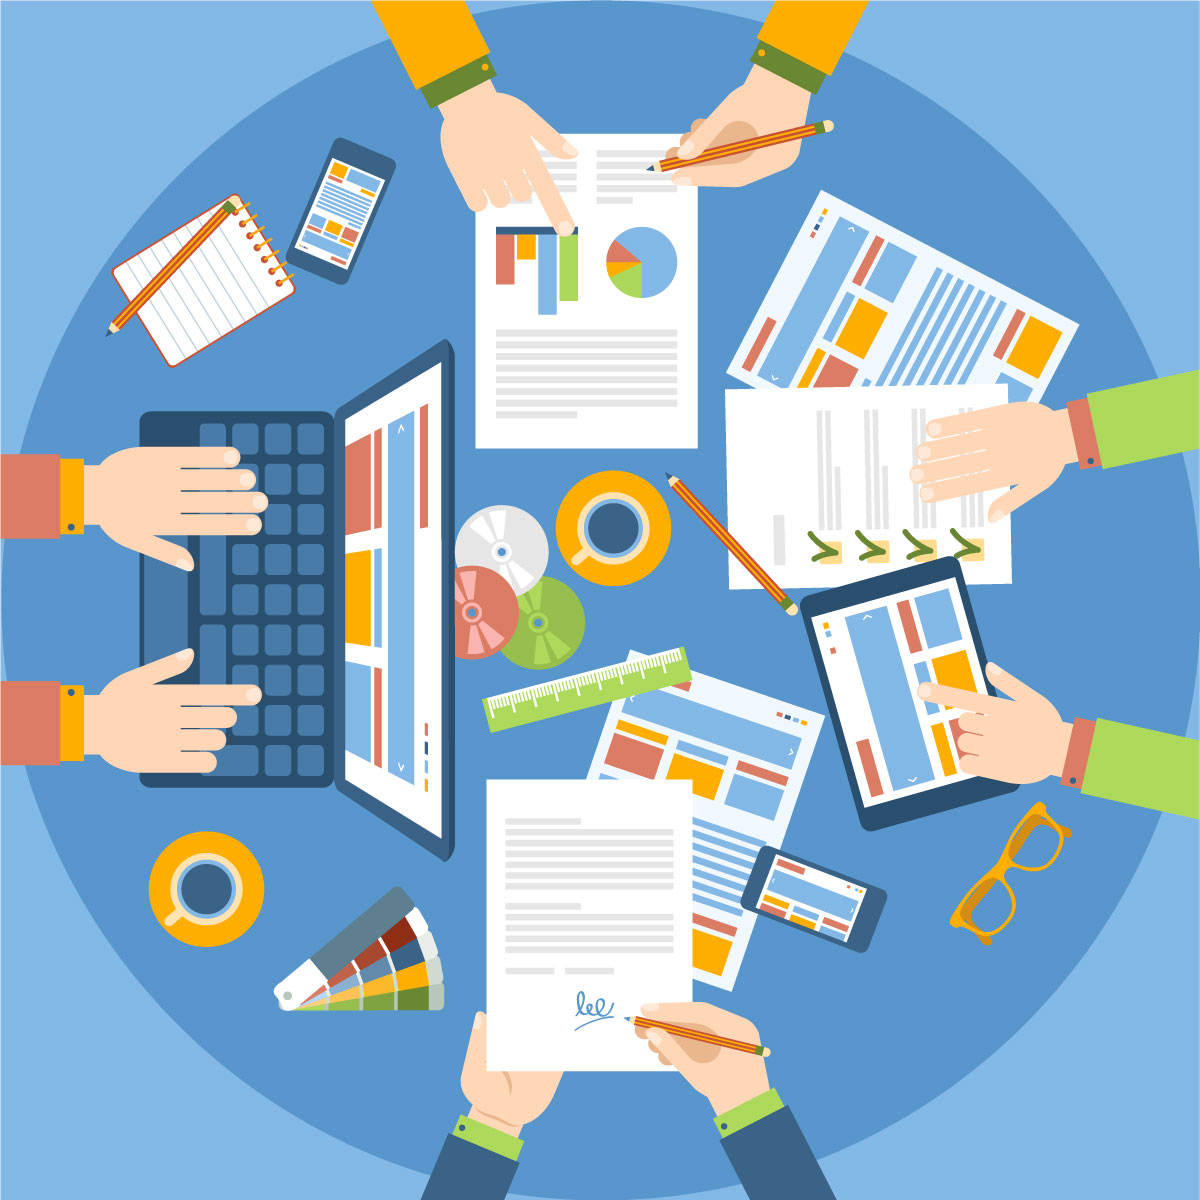 Share metrics with Employees